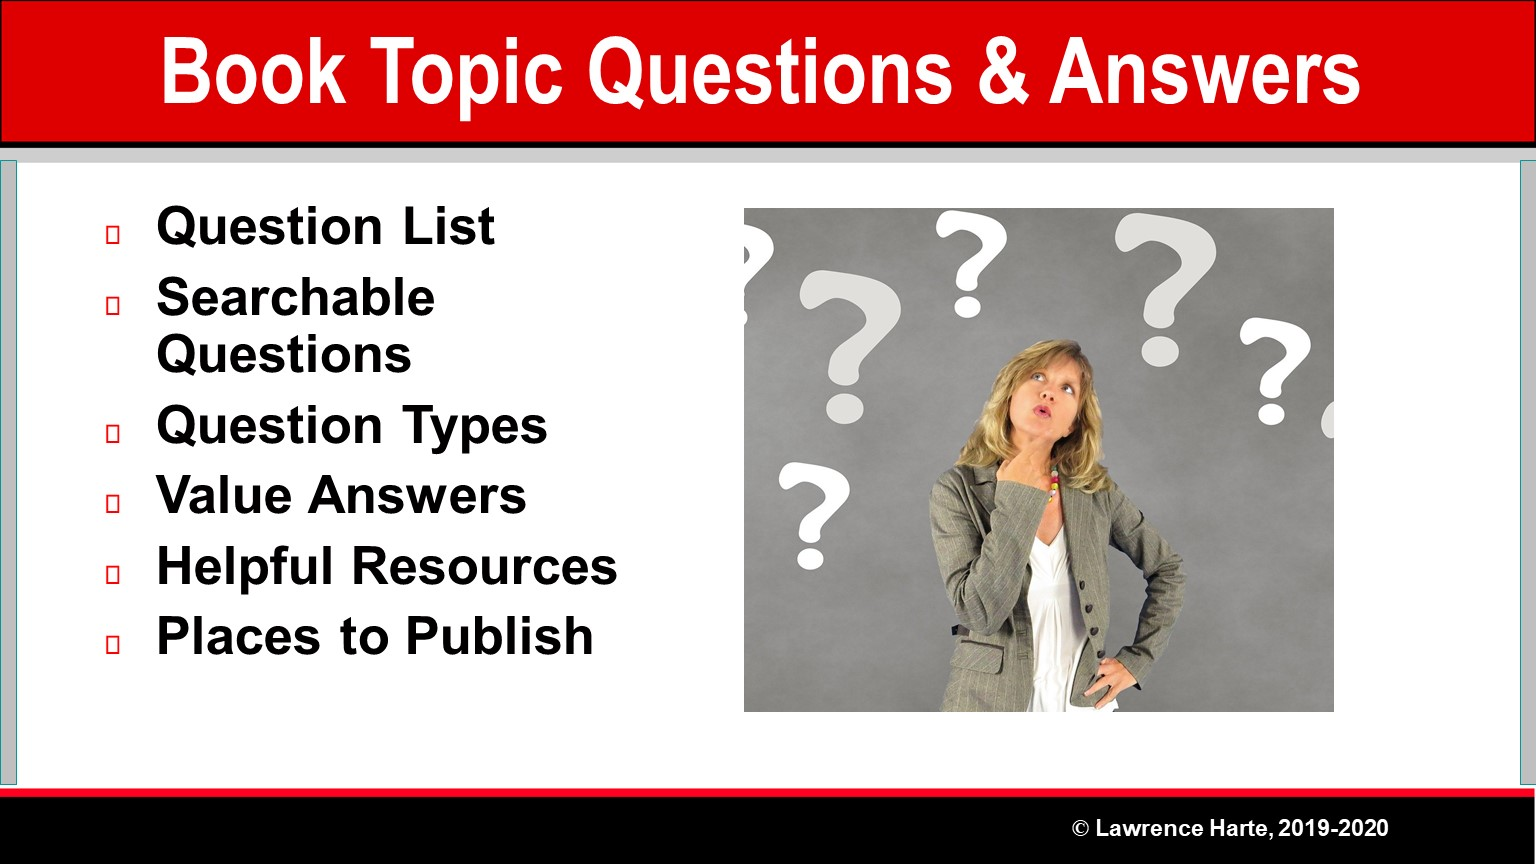 Book Pre-Launch Marketing Book Topic Questions and Answers